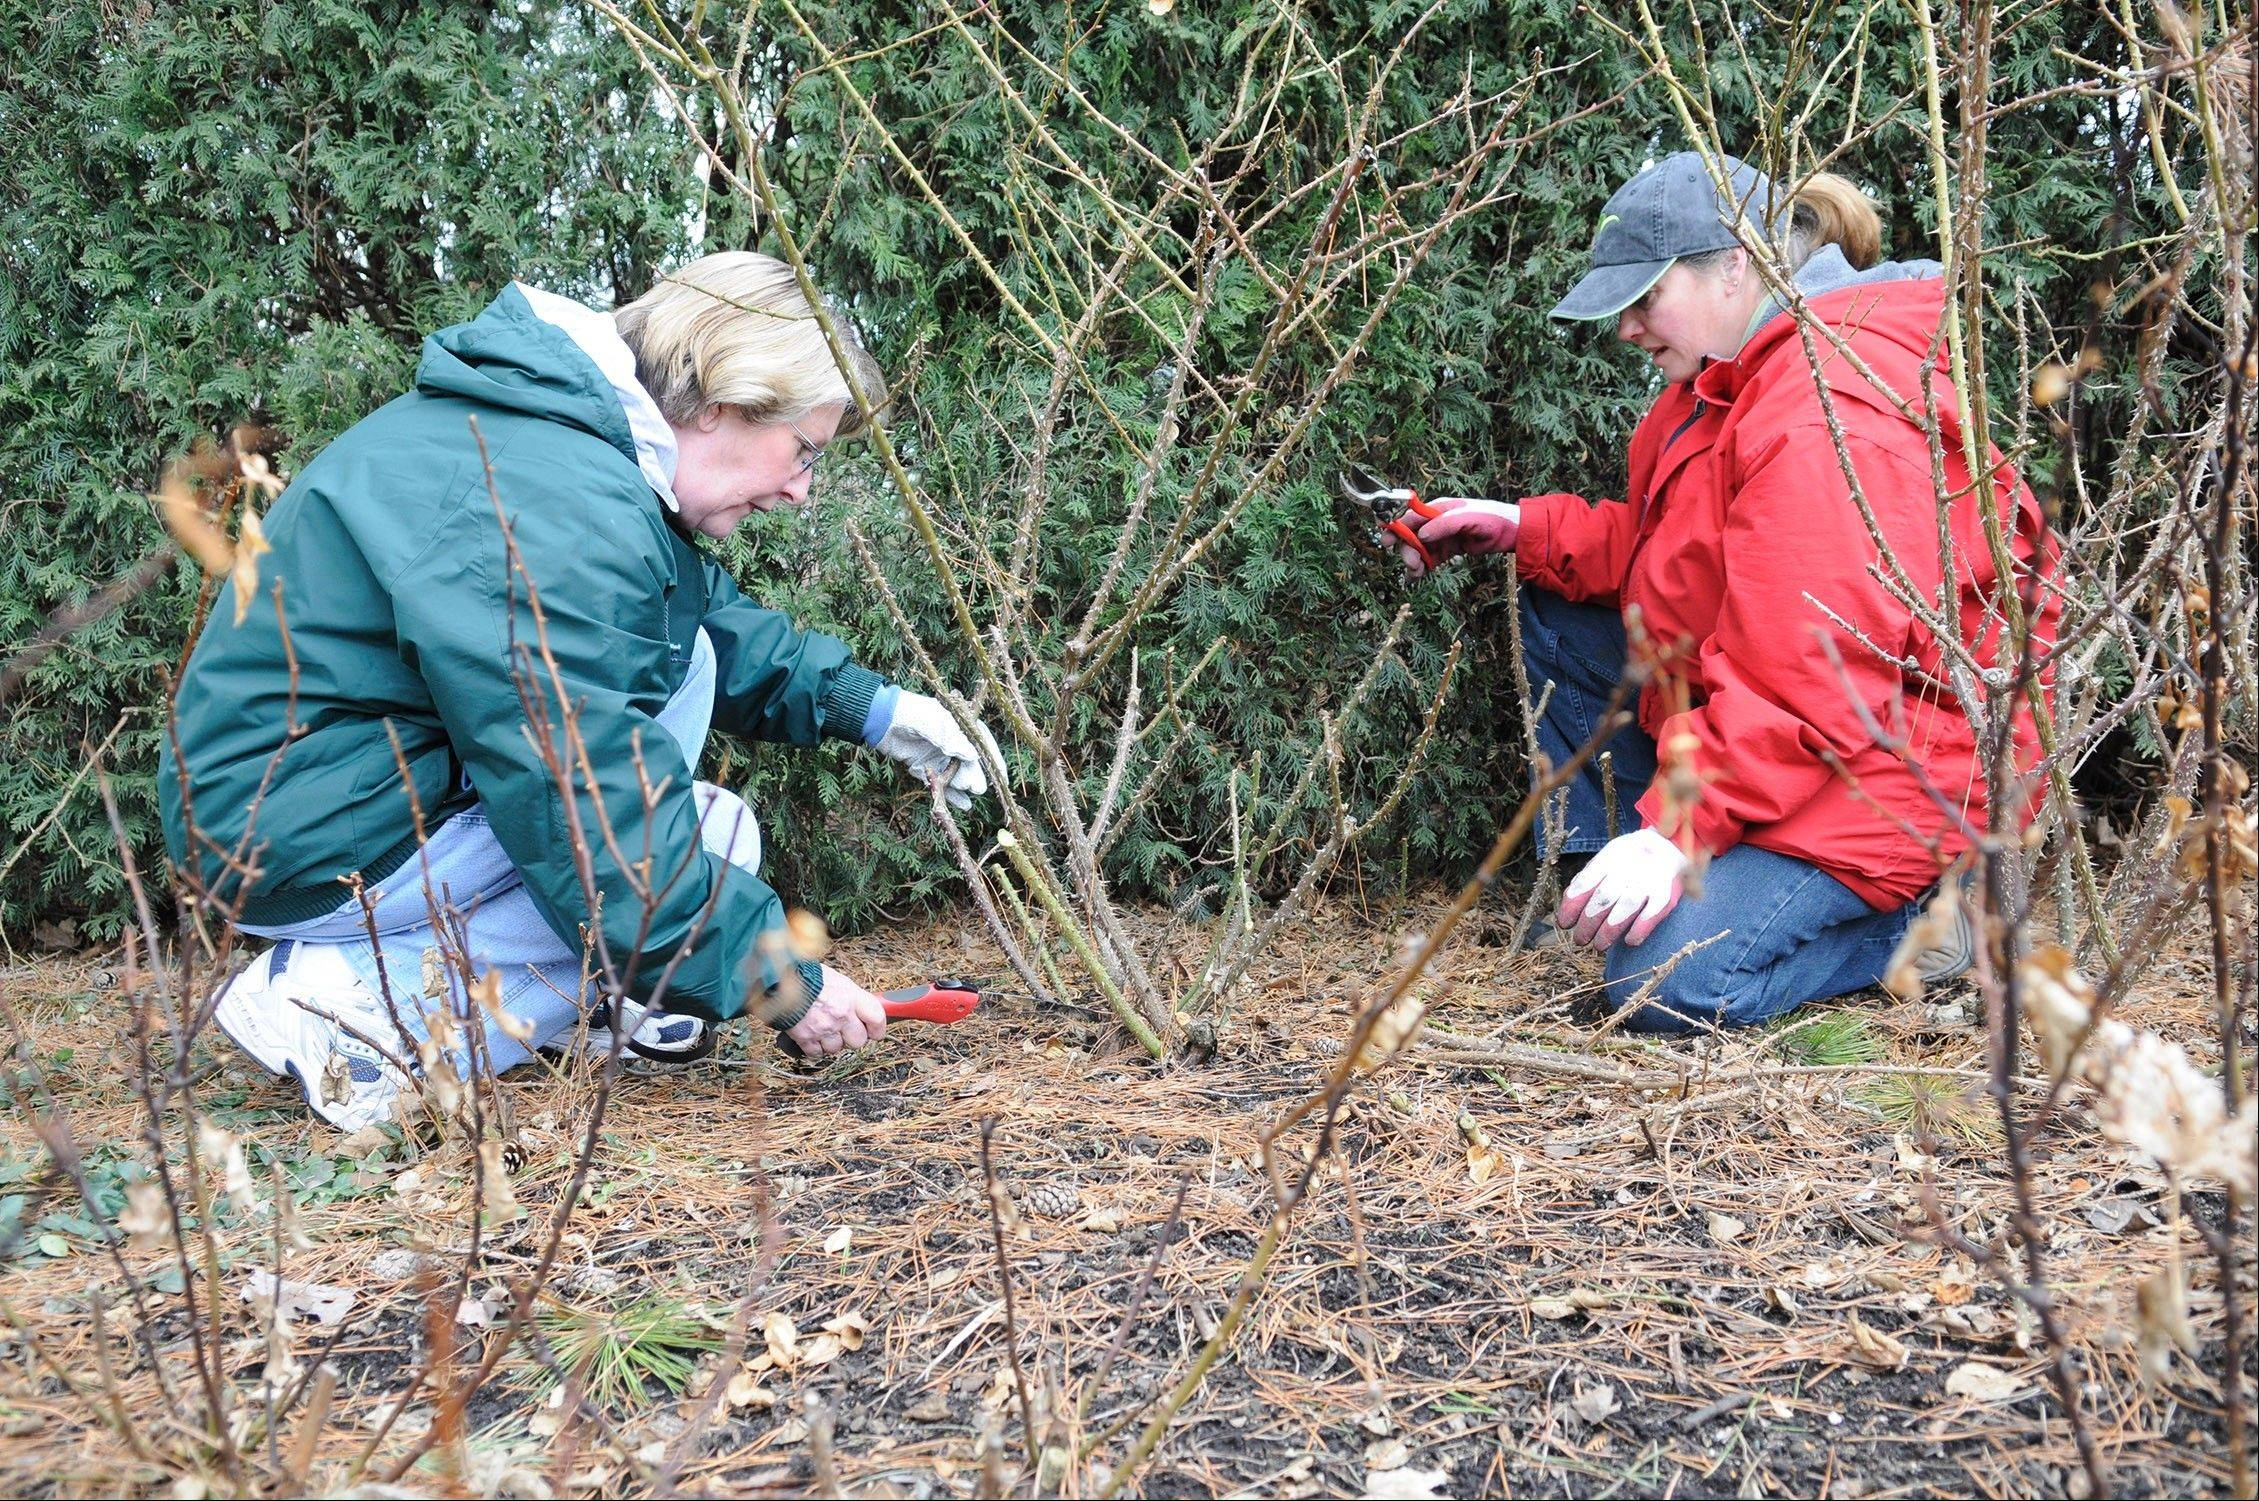 Begin uncovering hybrid roses in early April by carefully removing mulch from around the base. A bamboo stake works well as a tool for this task. Leave a small amount of mulch for protection in case of a late hard freeze. Prune these roses back to live growth. In some years that may mean leaving only 1 to 2 inches of stem.